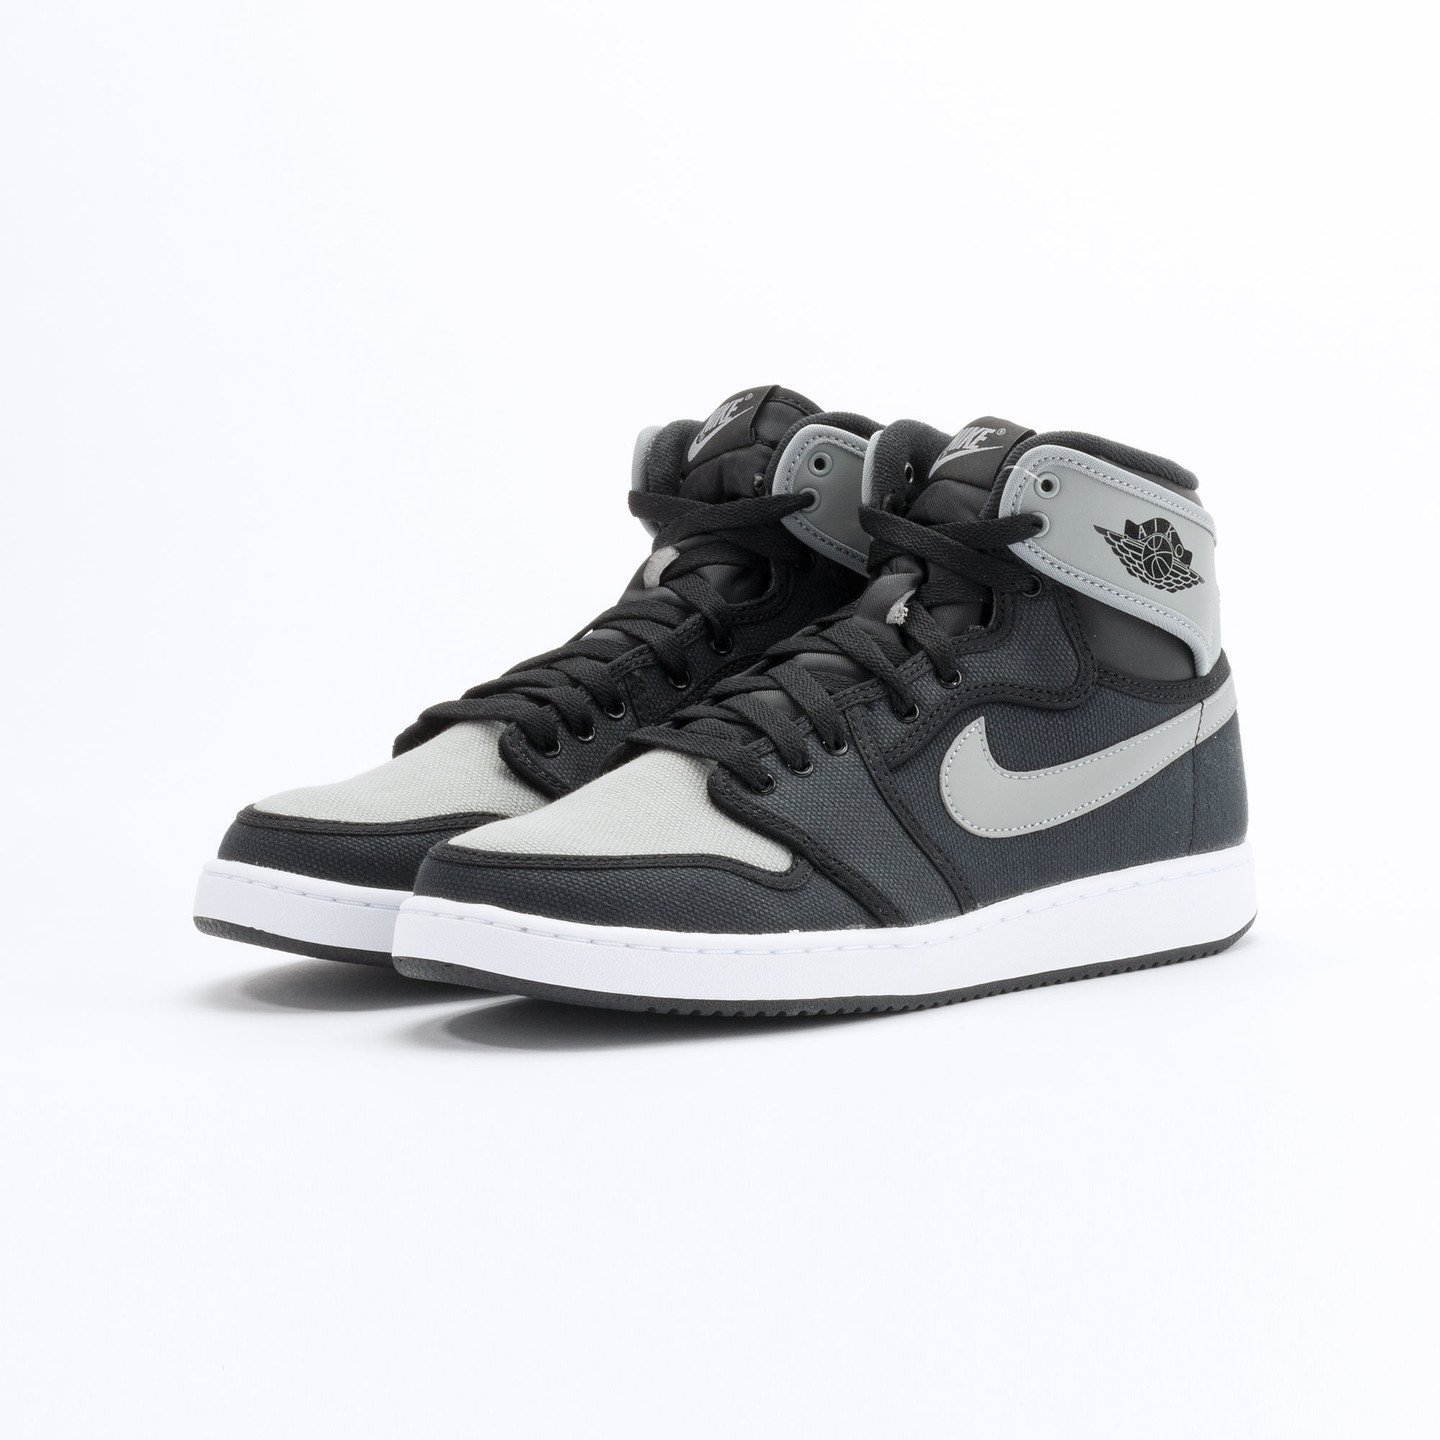 Nike Air Jordan 1 KO High OG Black / Shadow Grey / White 638471-003-42